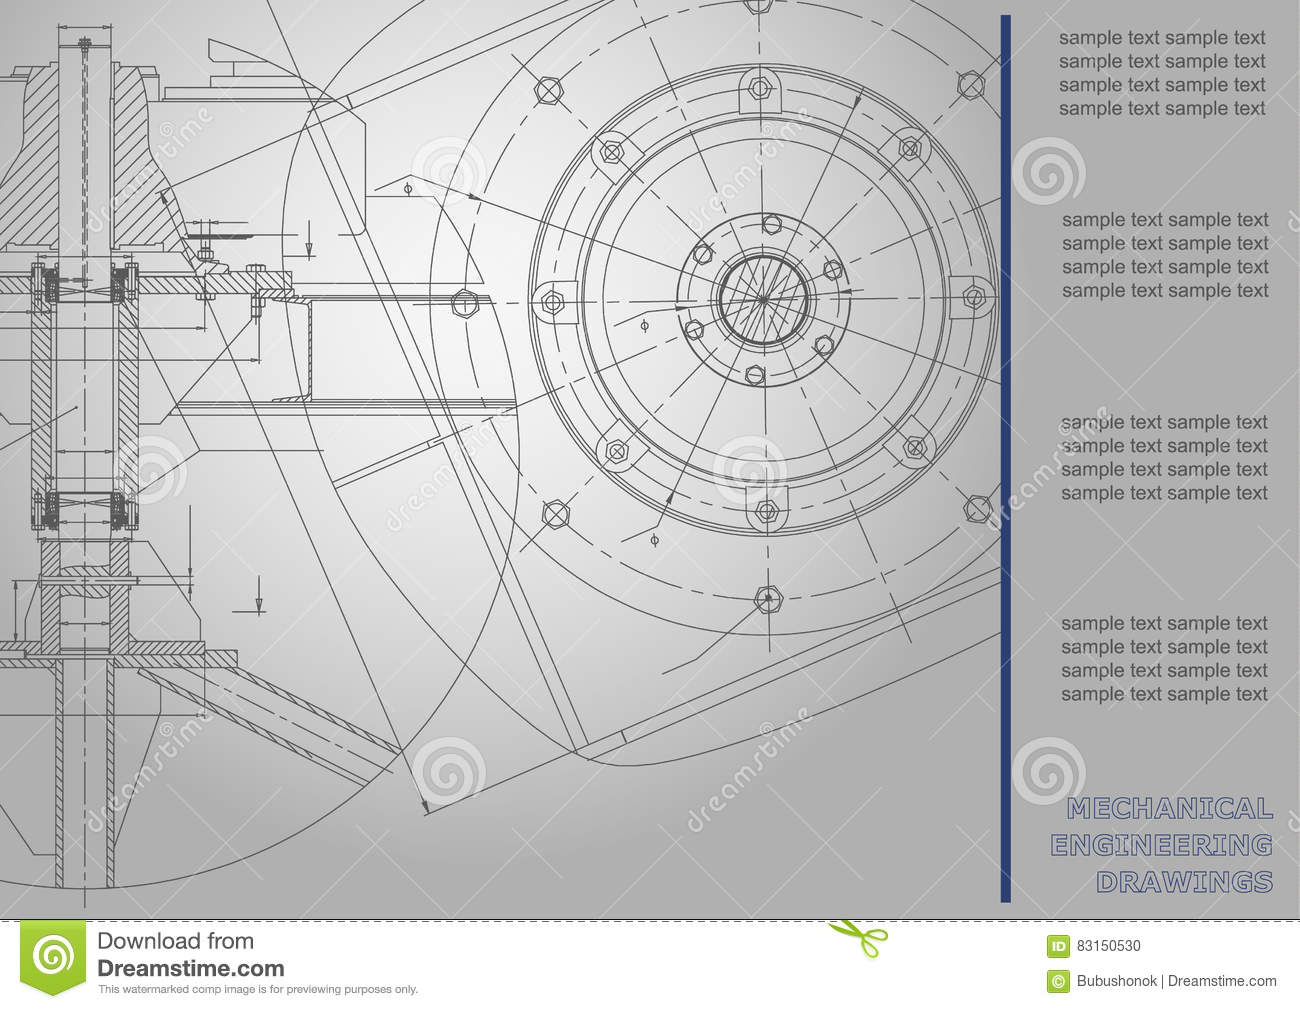 Vector Mechanical Engineering Drawings Stock Vector - Illustration ...